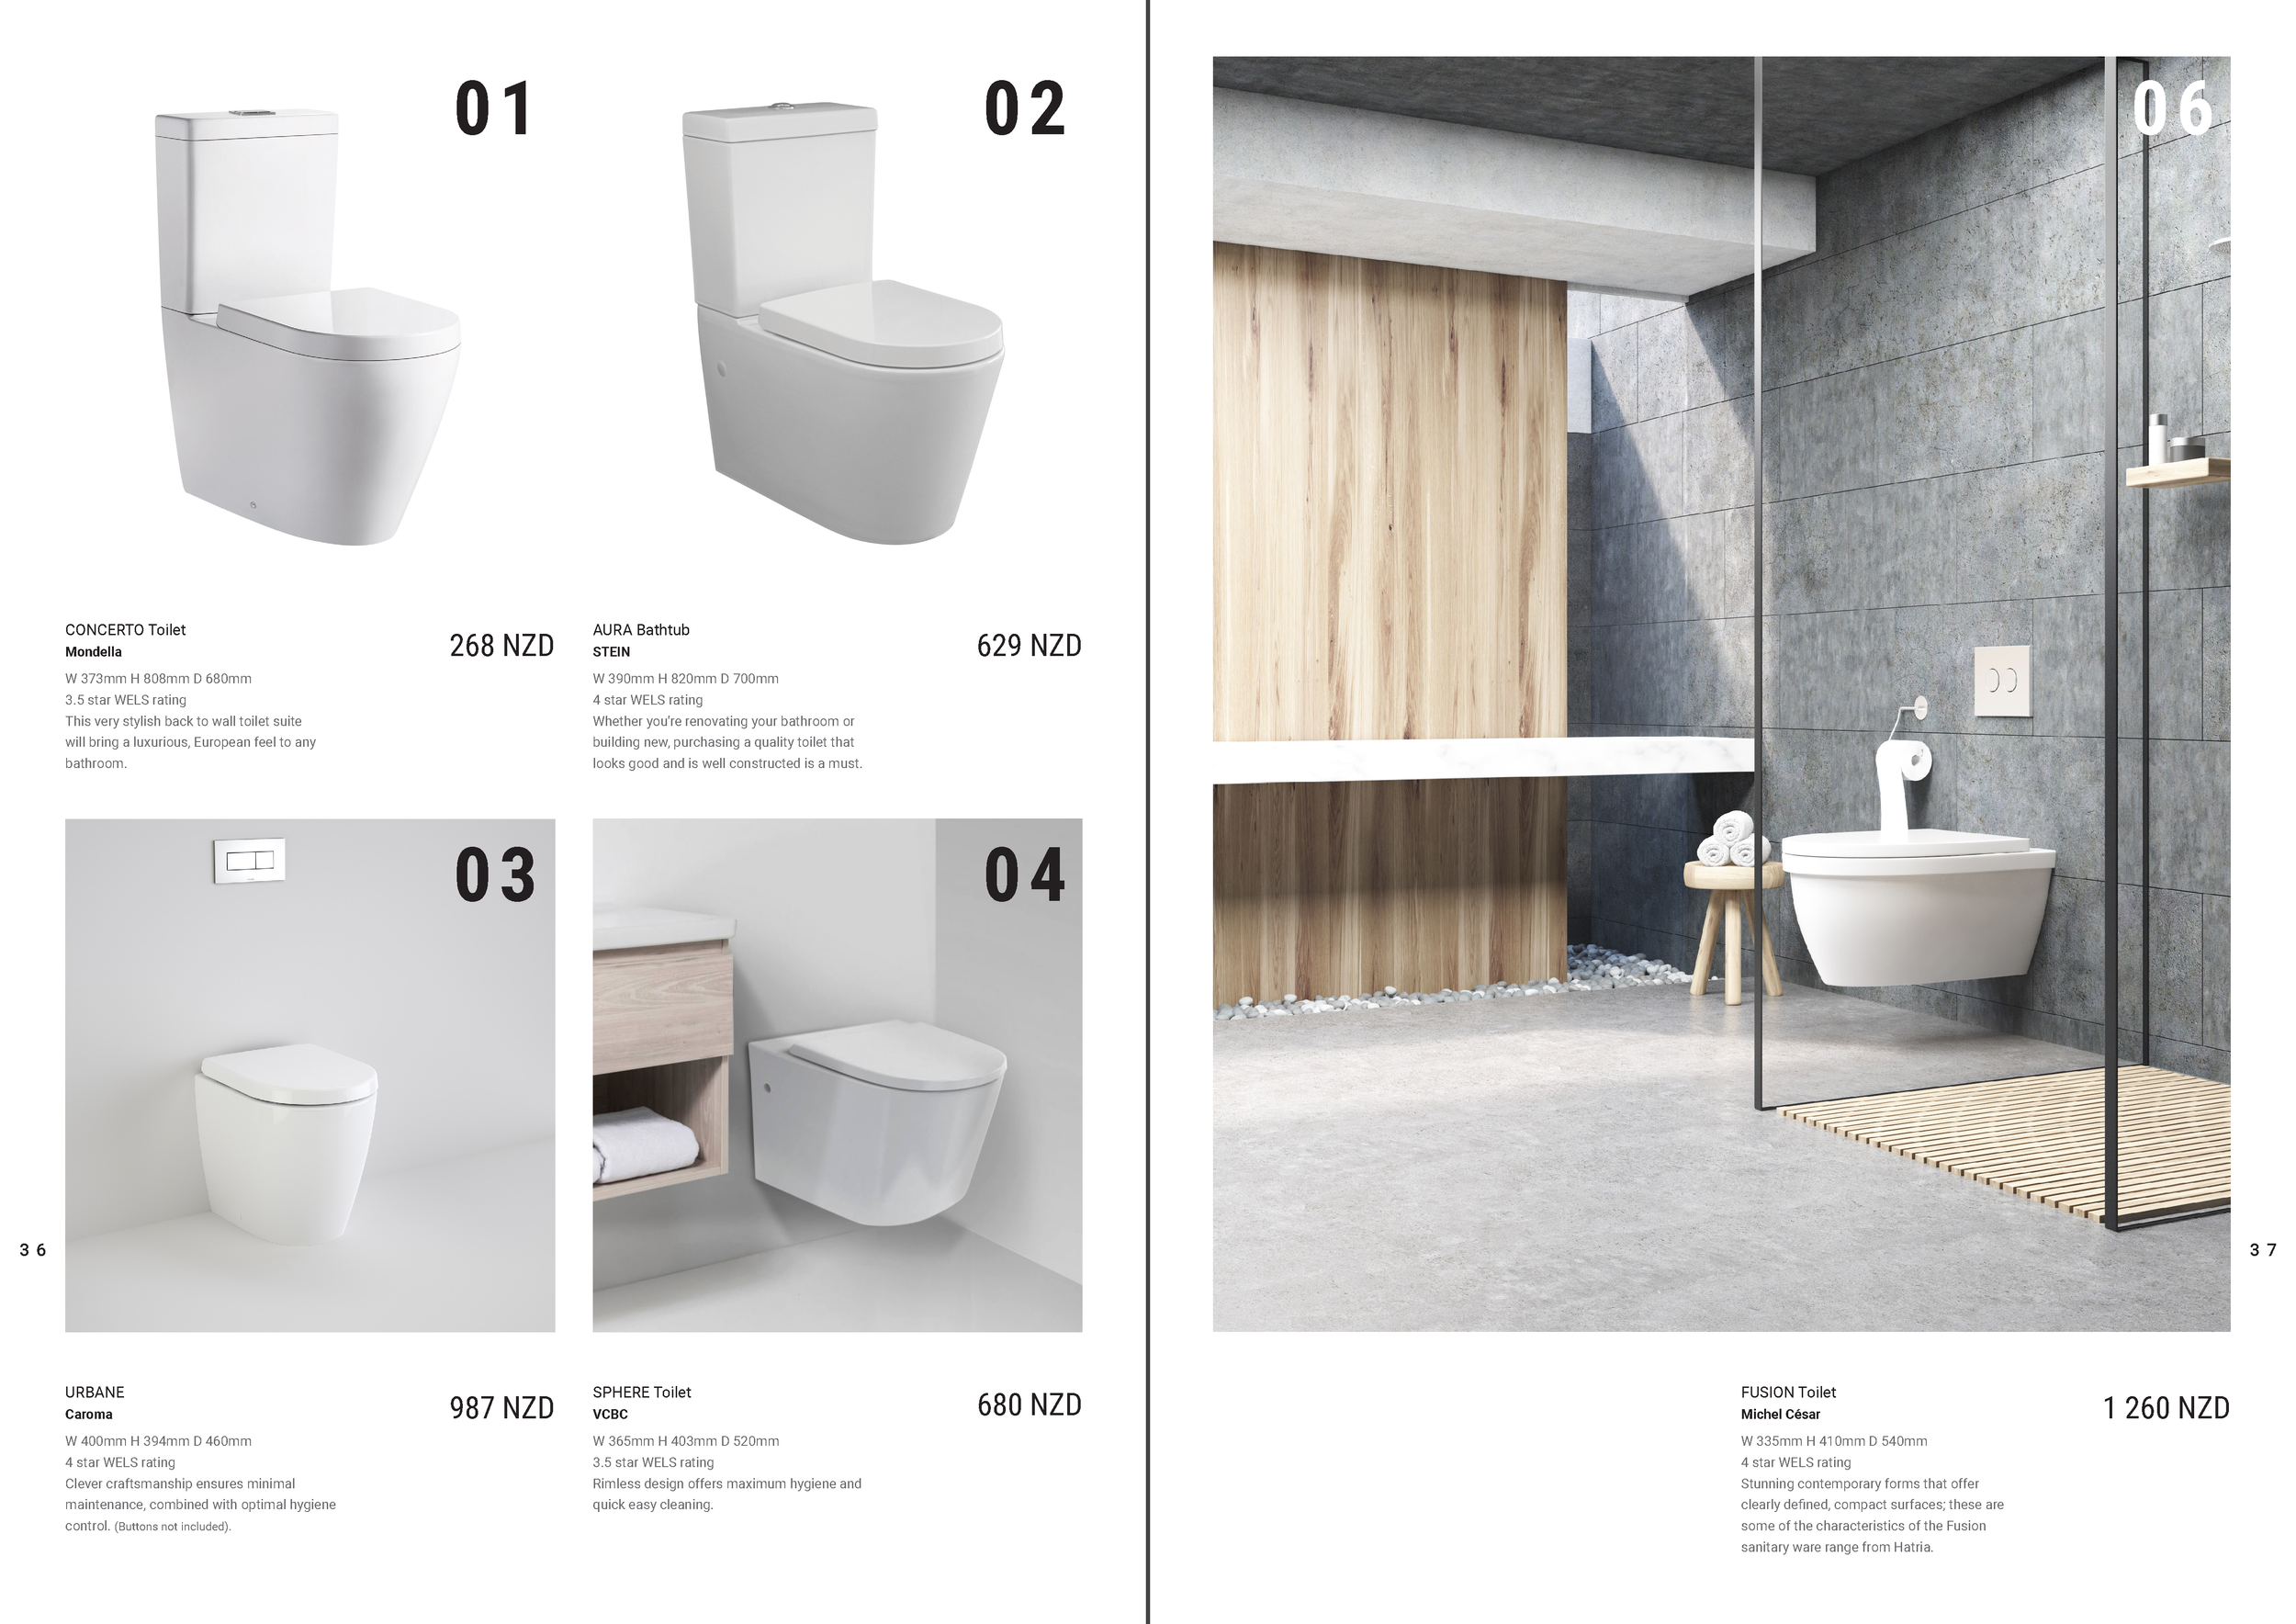 BATHROOM-KITCHEN - 5.06 - 1A - OLIVIA FROST_Page_19.png